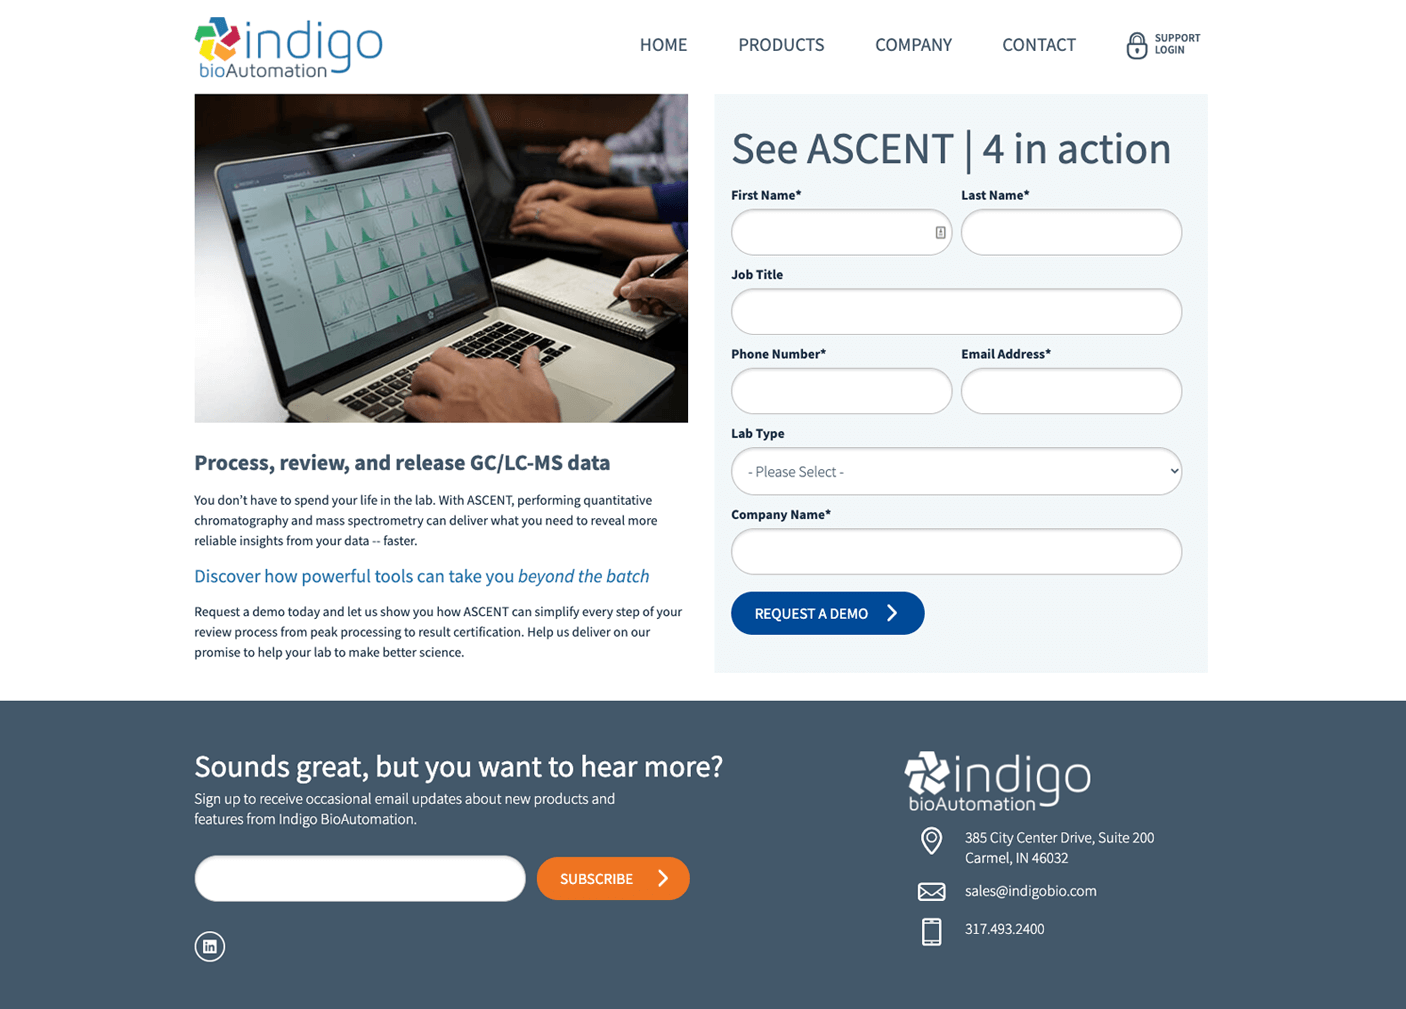 Request a Demo form web page